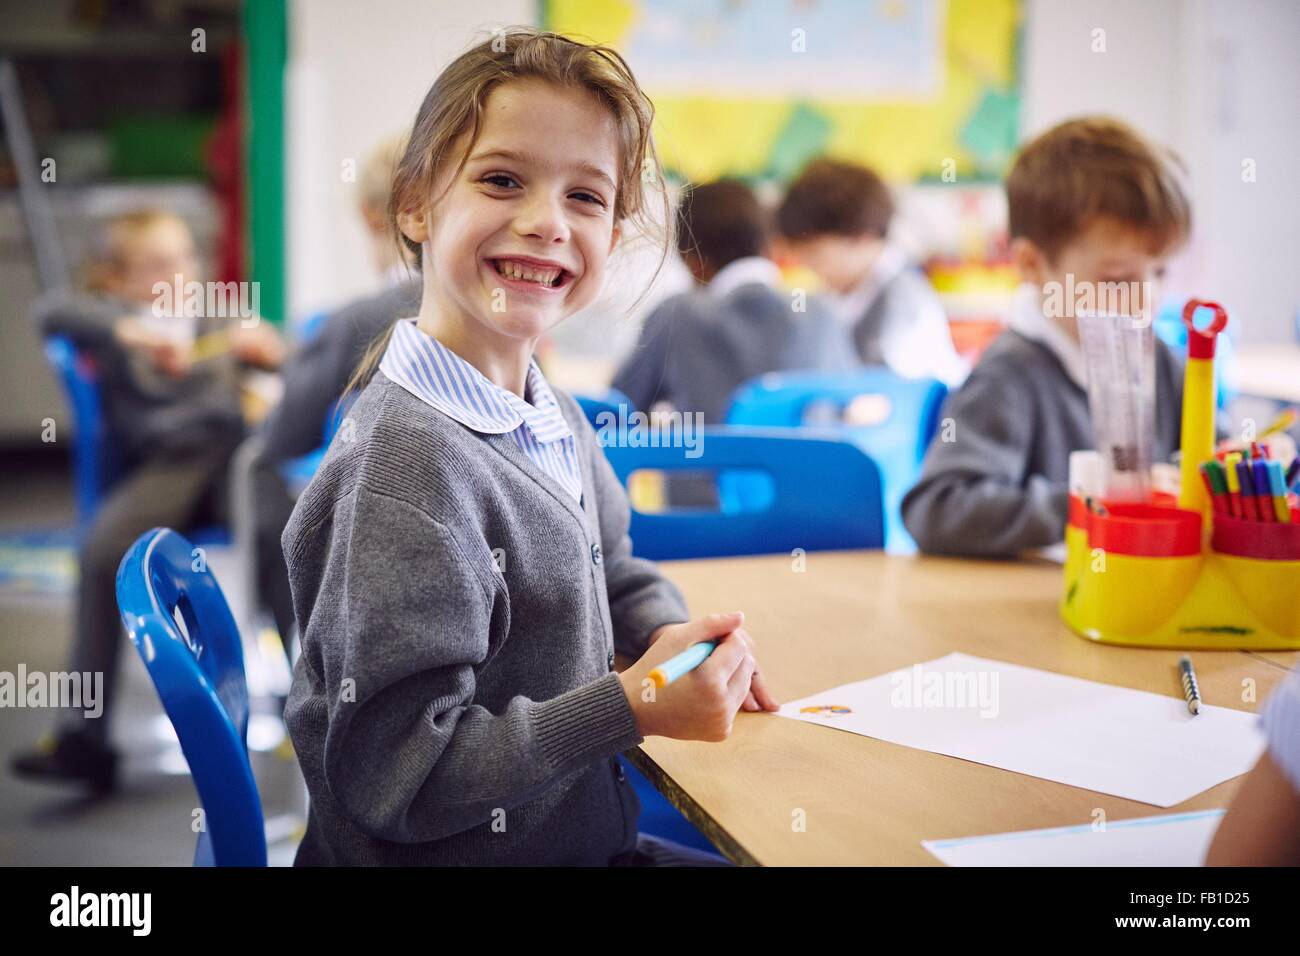 Portrait of girl at desk in elementary school - Stock Image